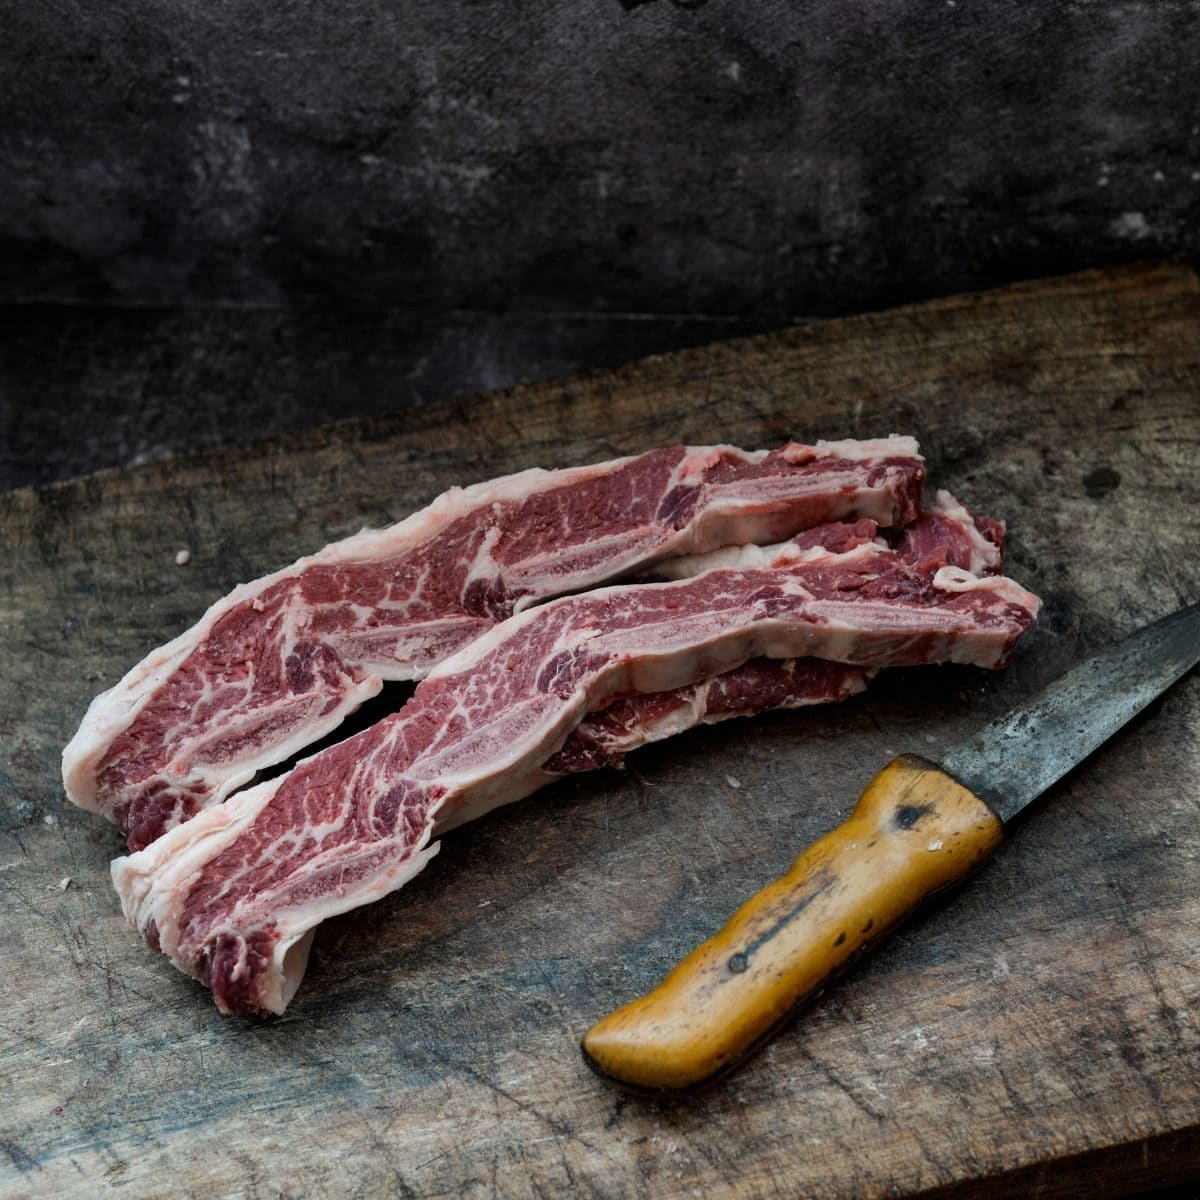 strips of meat next to a knife on chopping board